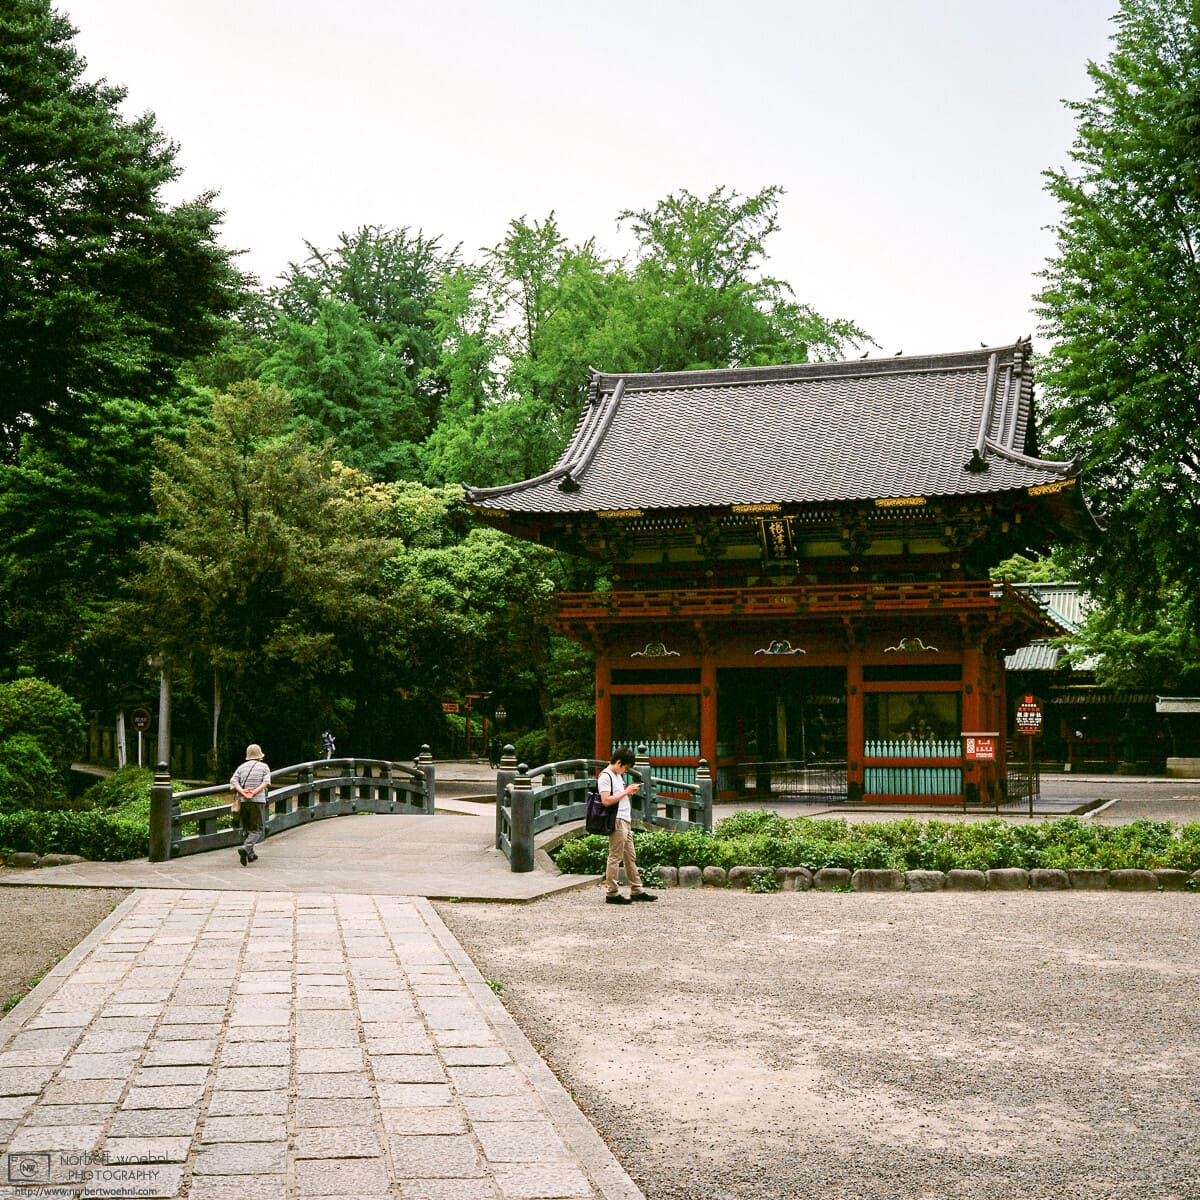 The two-storied Rōmon Gate at Nezu Shrine in Tokyo, Japan, was built in 1706.